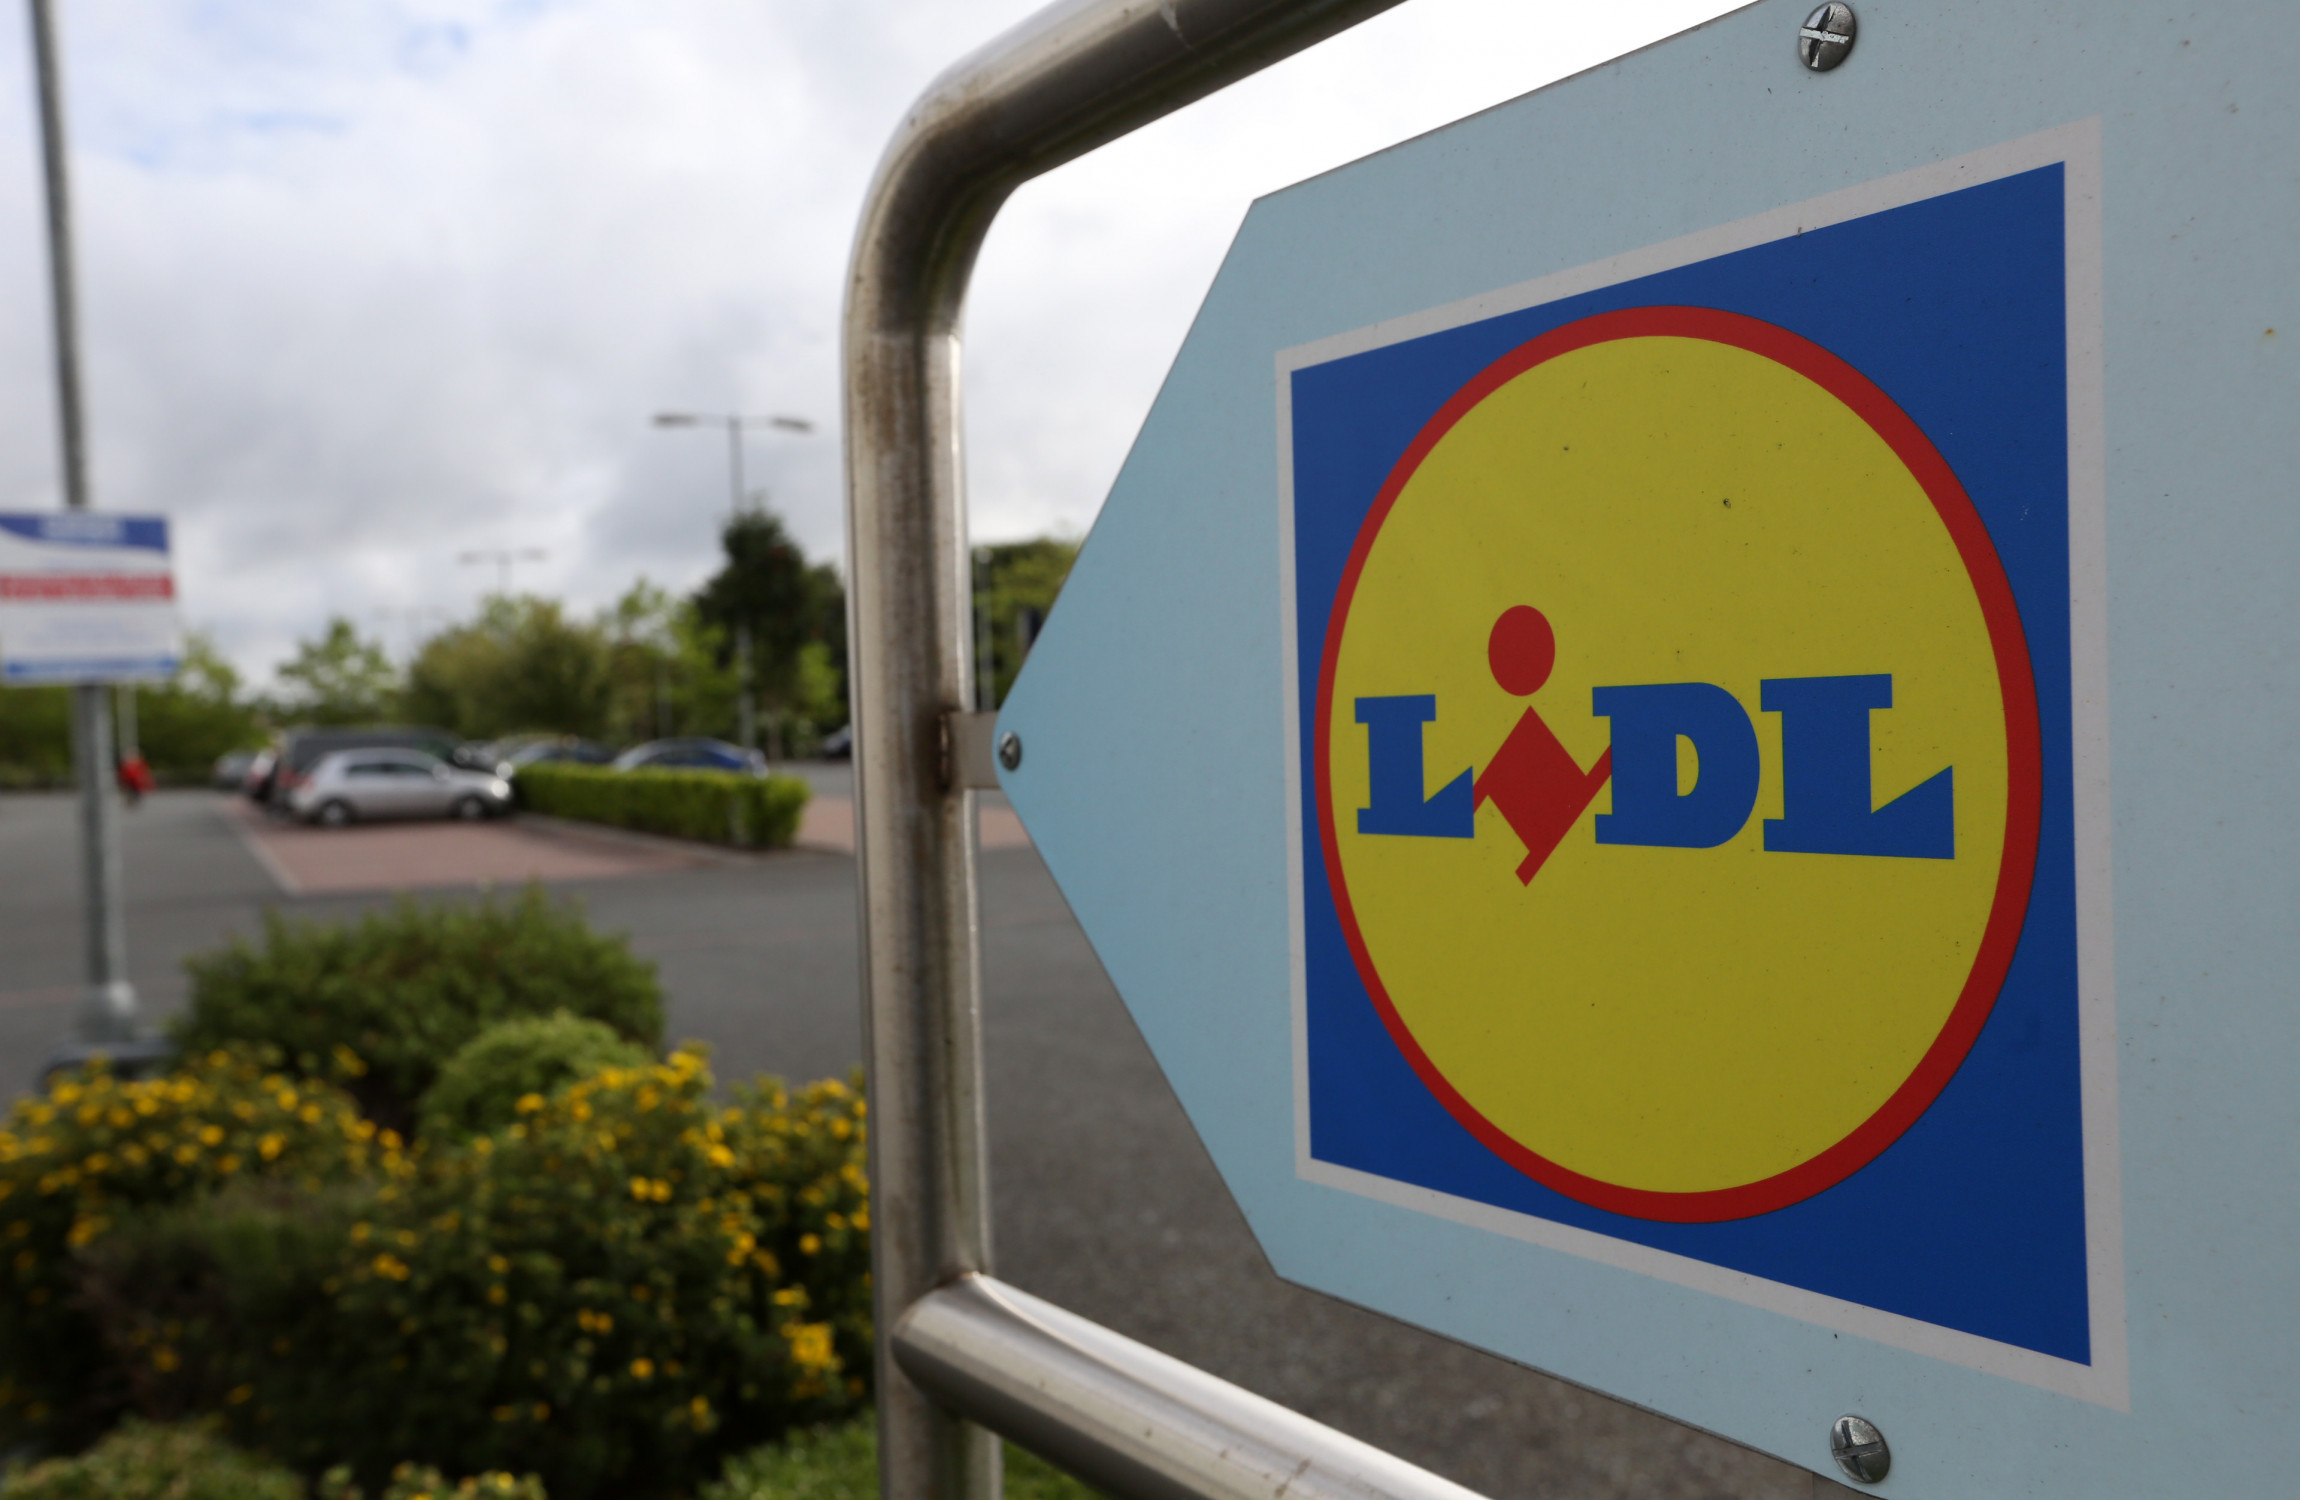 Gang in JCB tear roof off Lidl supermarket in looting